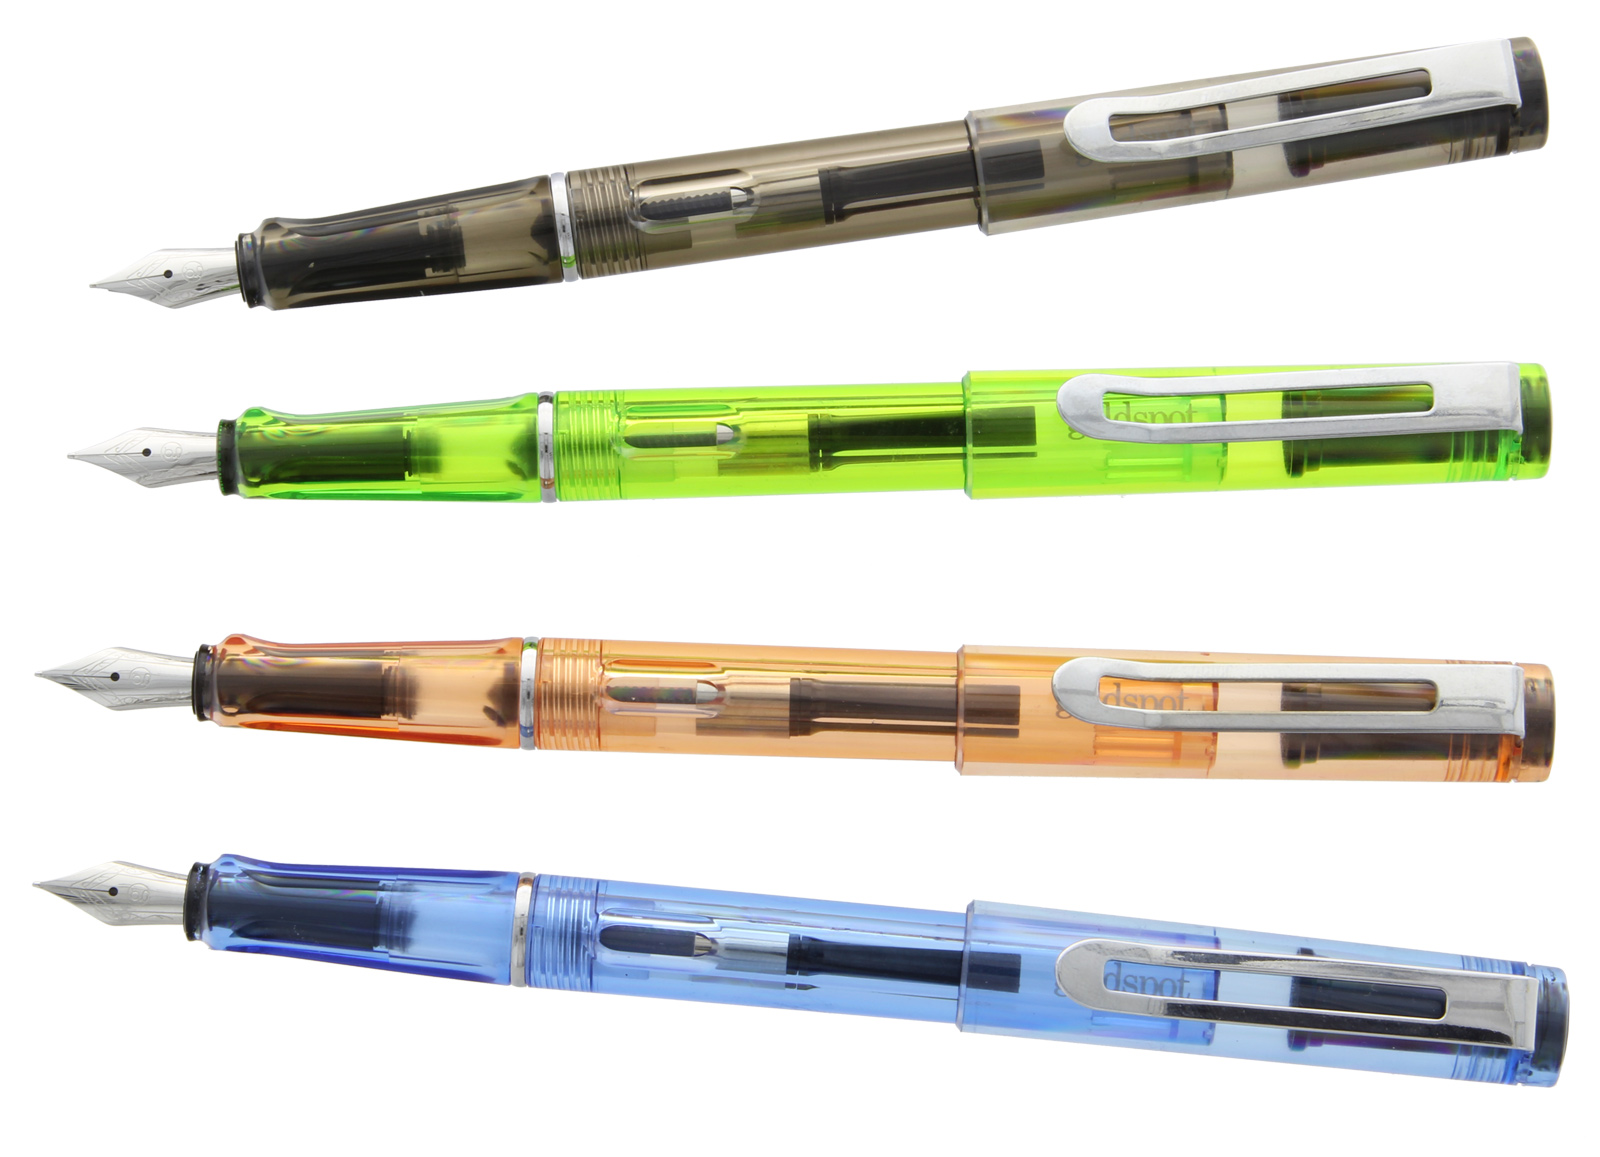 fine writing pens Caran d'ache pens the great traditions of precision and quality of swiss manufacturing are inherent in all of the caran d'ache fine writing instruments and accessories ranges.